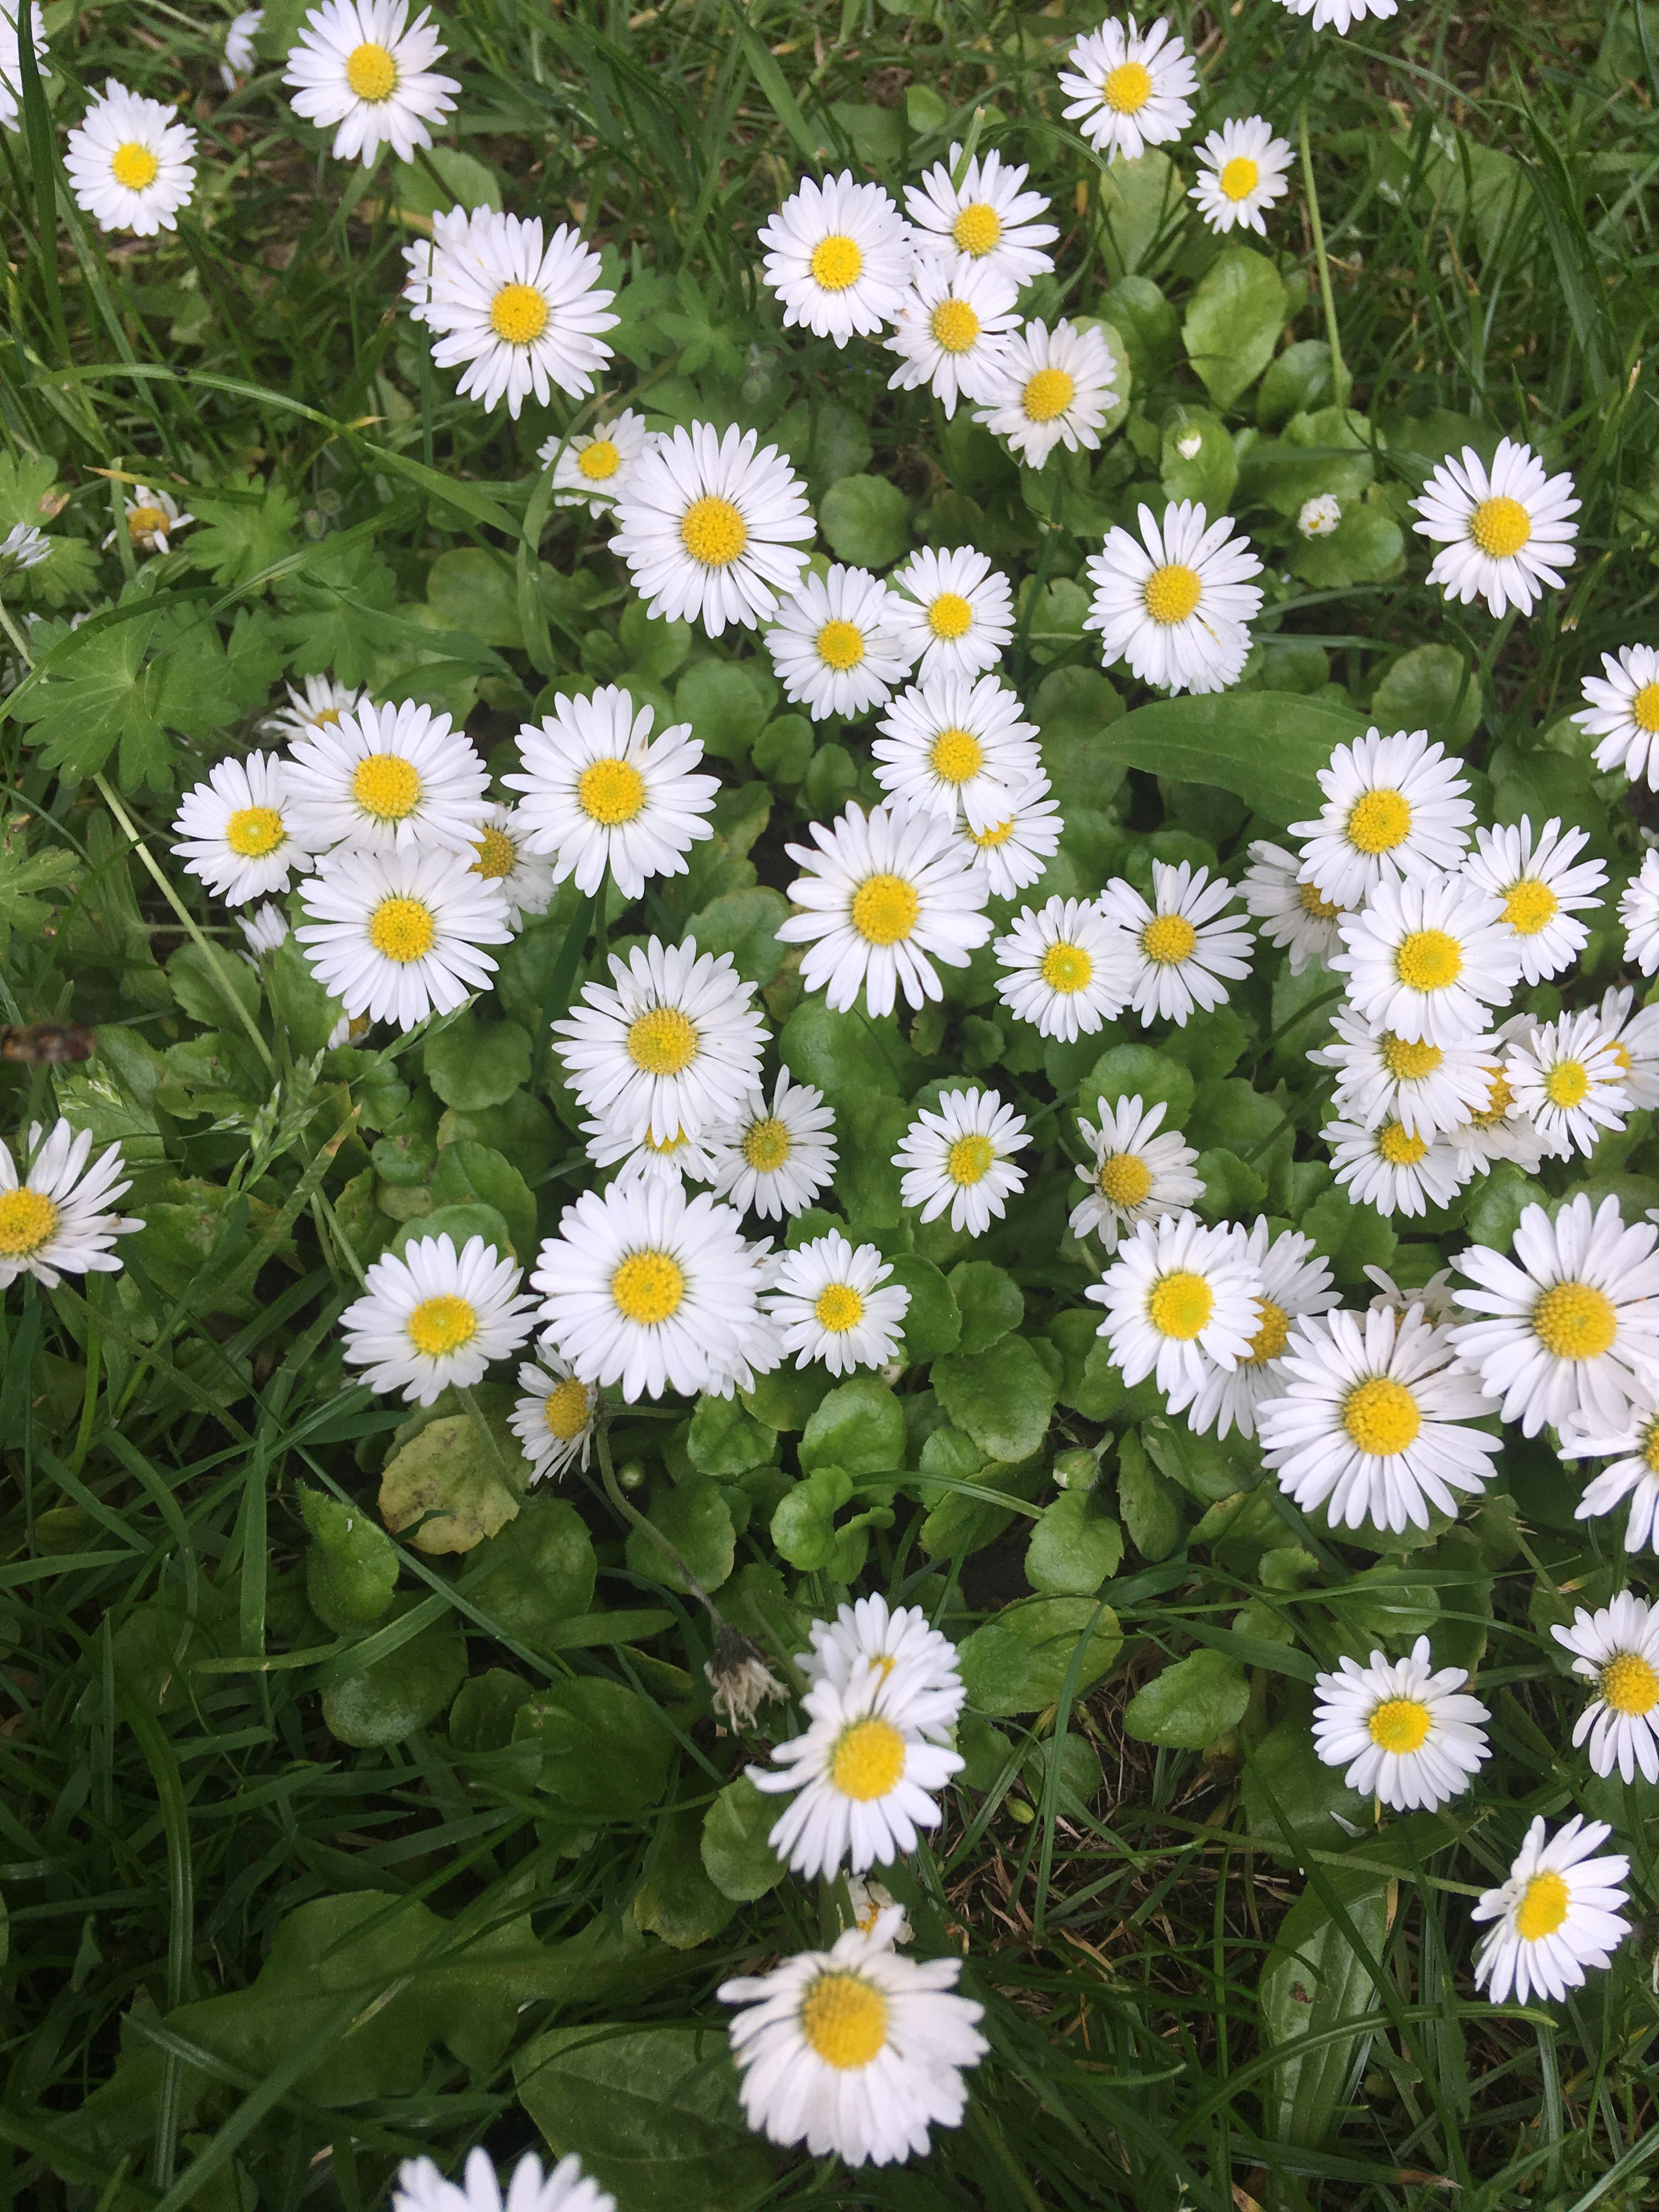 Daisies symbols of innocence in the victorian language of flowers daisies symbols of innocence in the victorian language of flowers izmirmasajfo